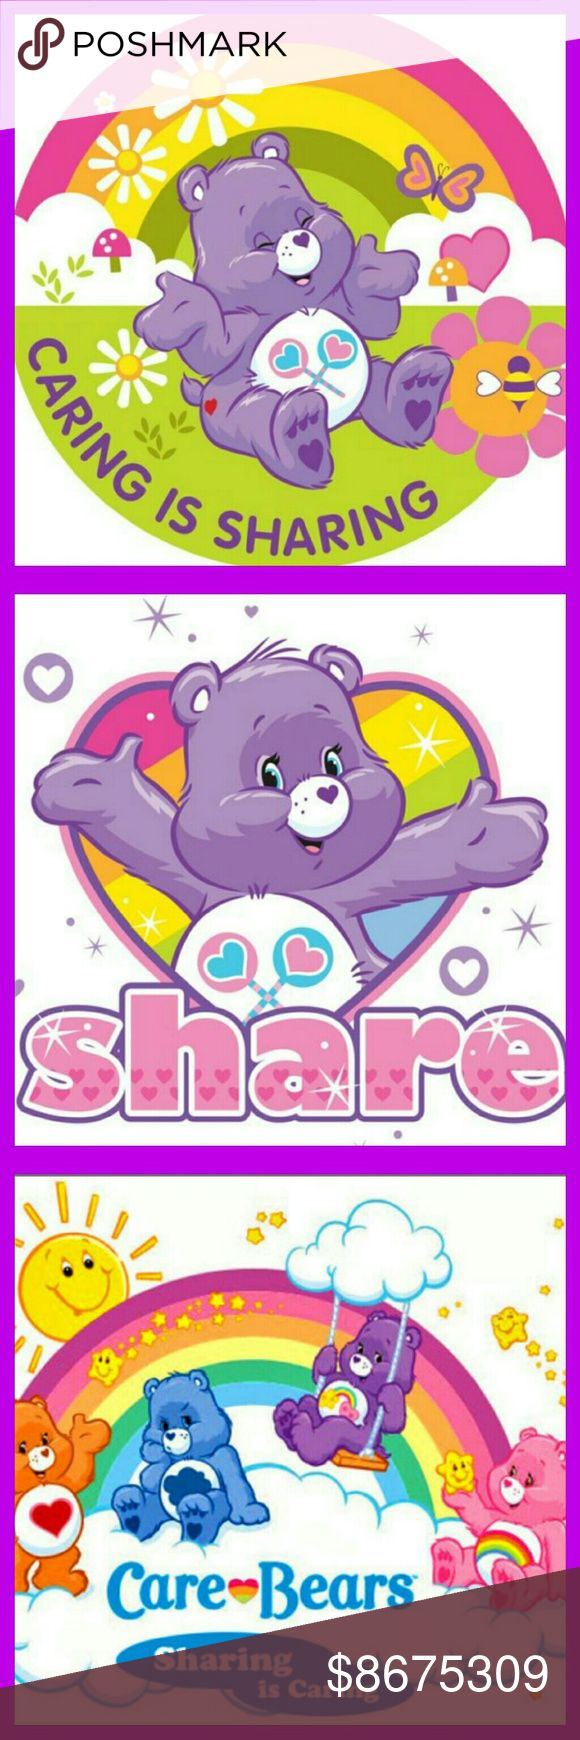 I'm a Share Bear! Sharing is definitely caring here in the land of Poshmark! Christine's Findings  Other